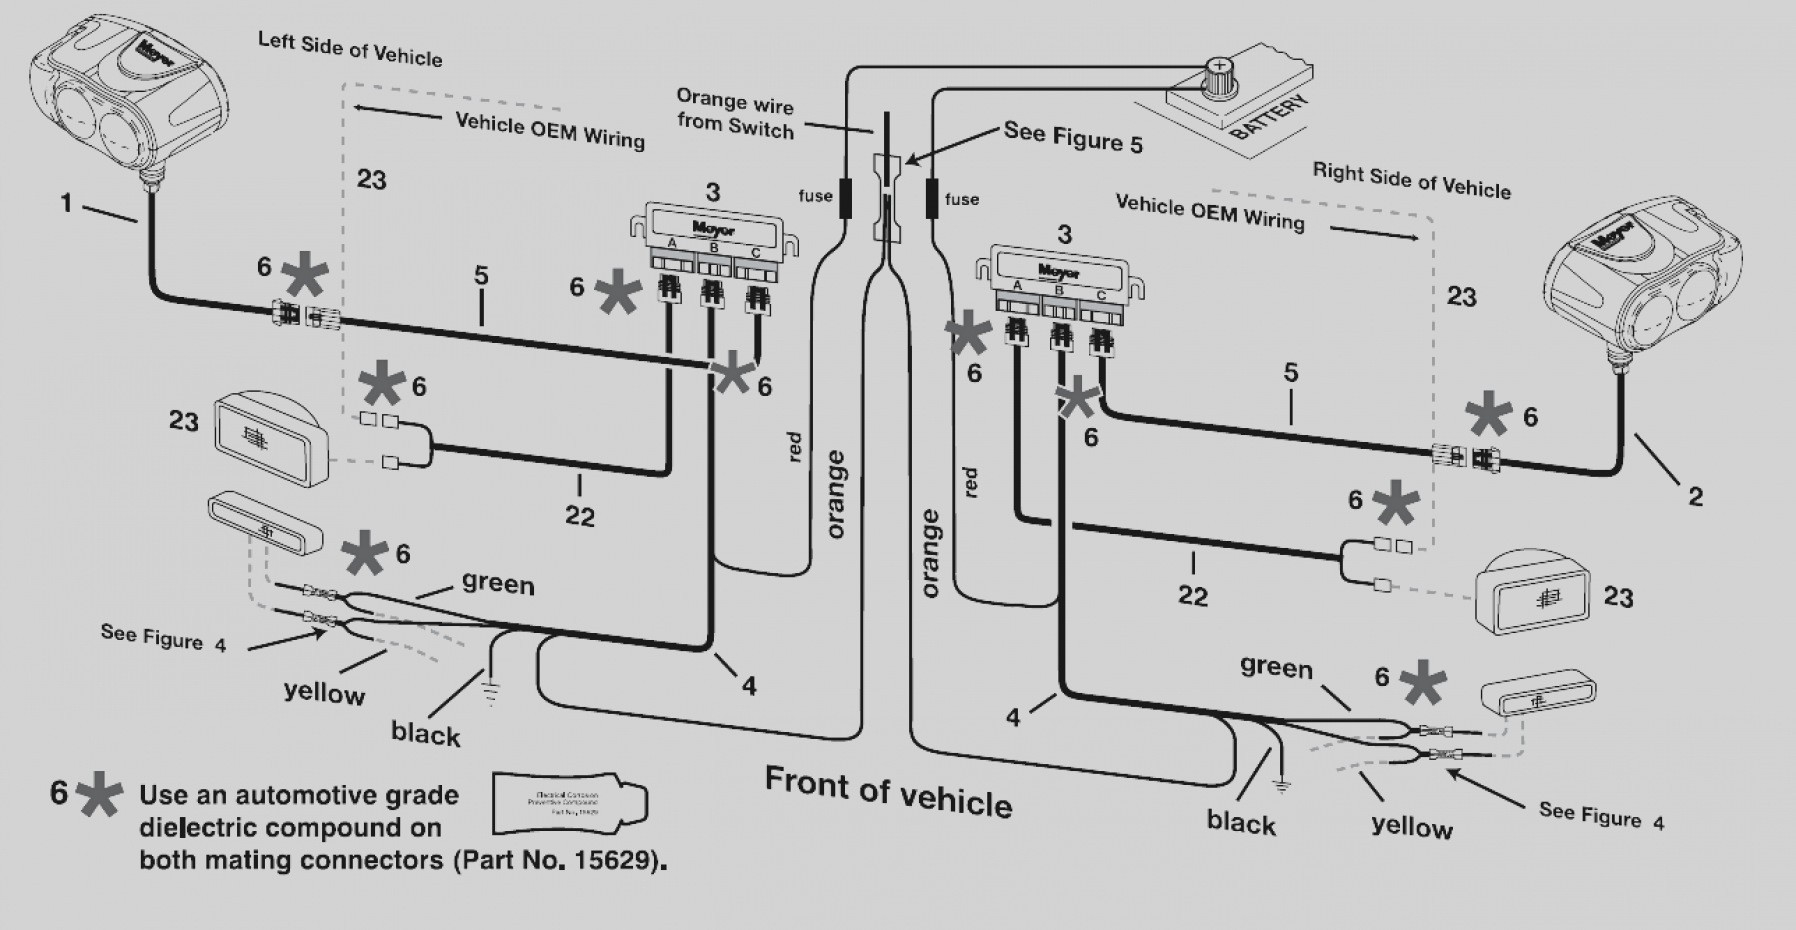 western snow plows wiring diagram headlights Download-Latest Western Plows Wiring Diagram Blizzard Snow Plow Diagrams Throughout 12-g